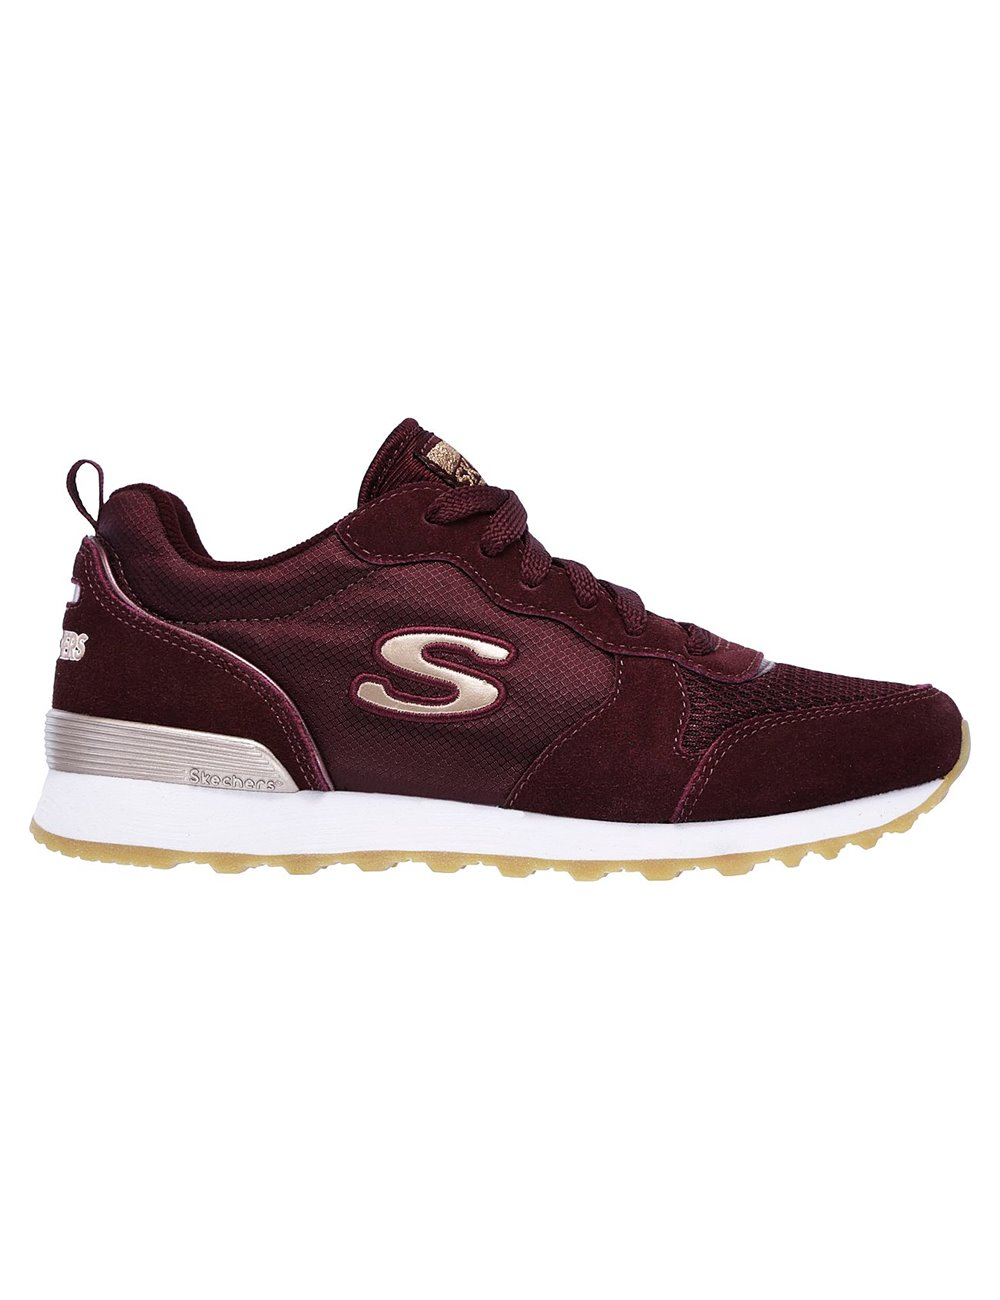 Zapatillas Skechers 111 Burdeos